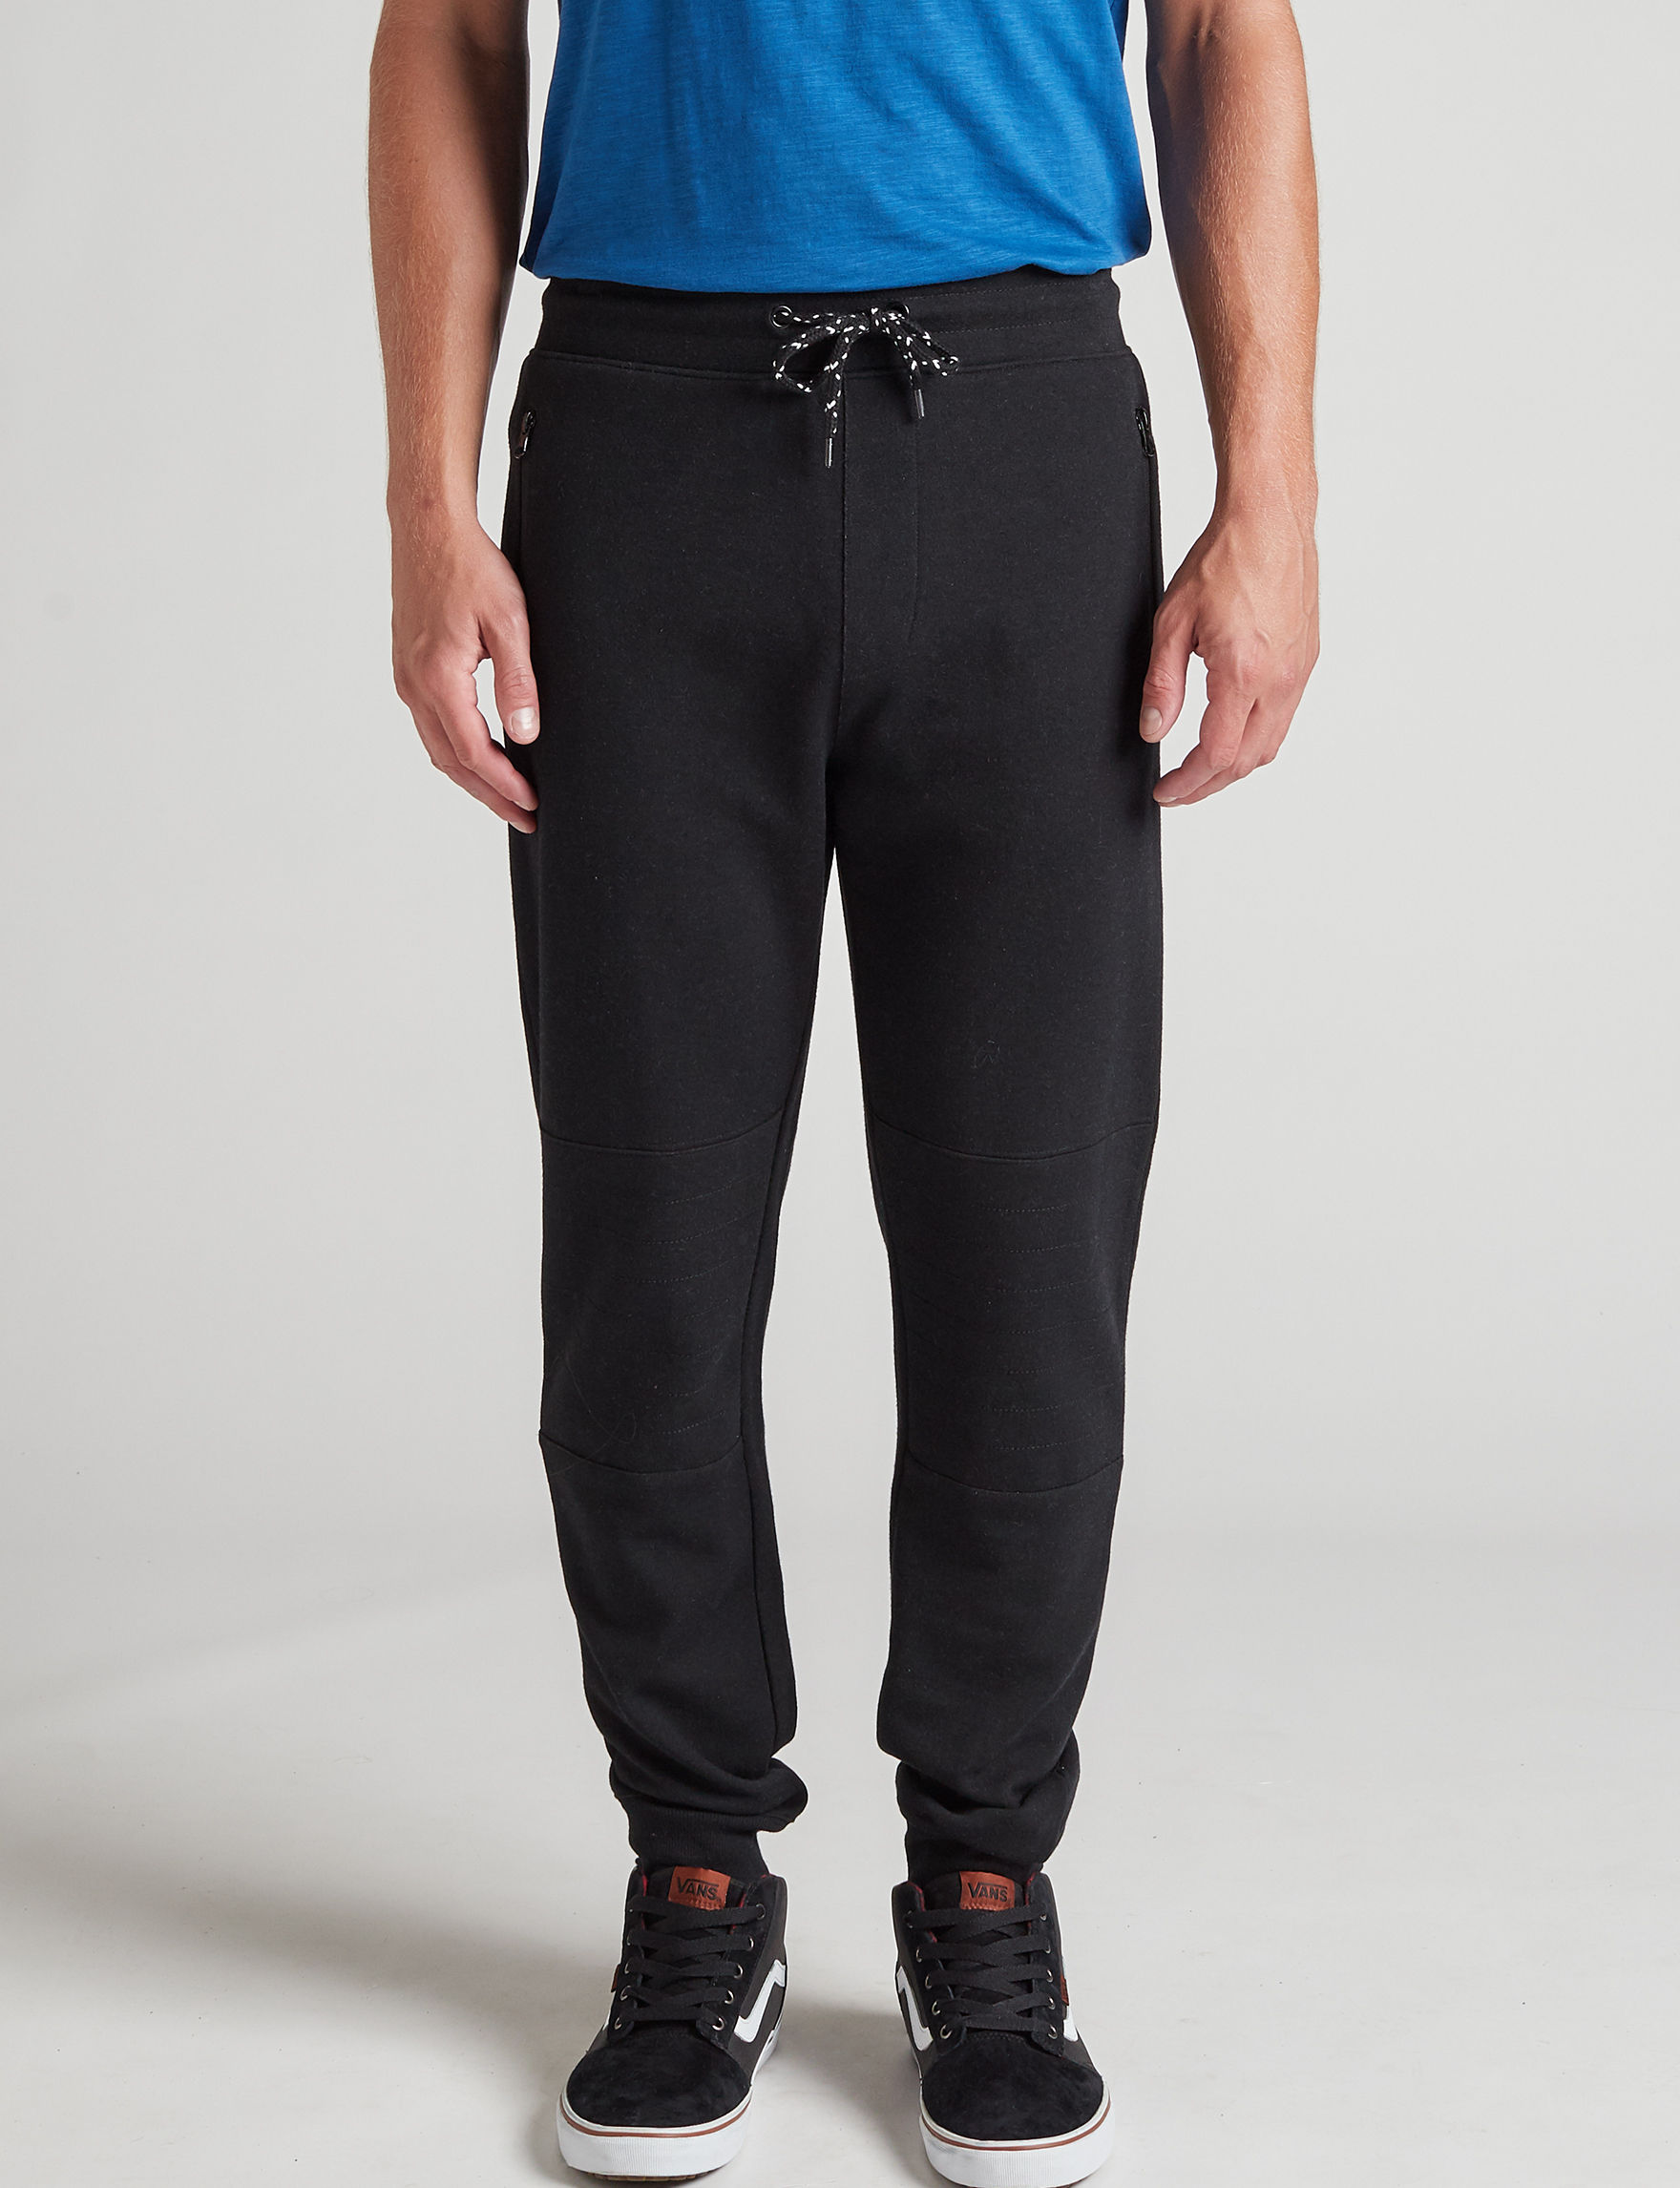 Rustic Blue Black Jogger